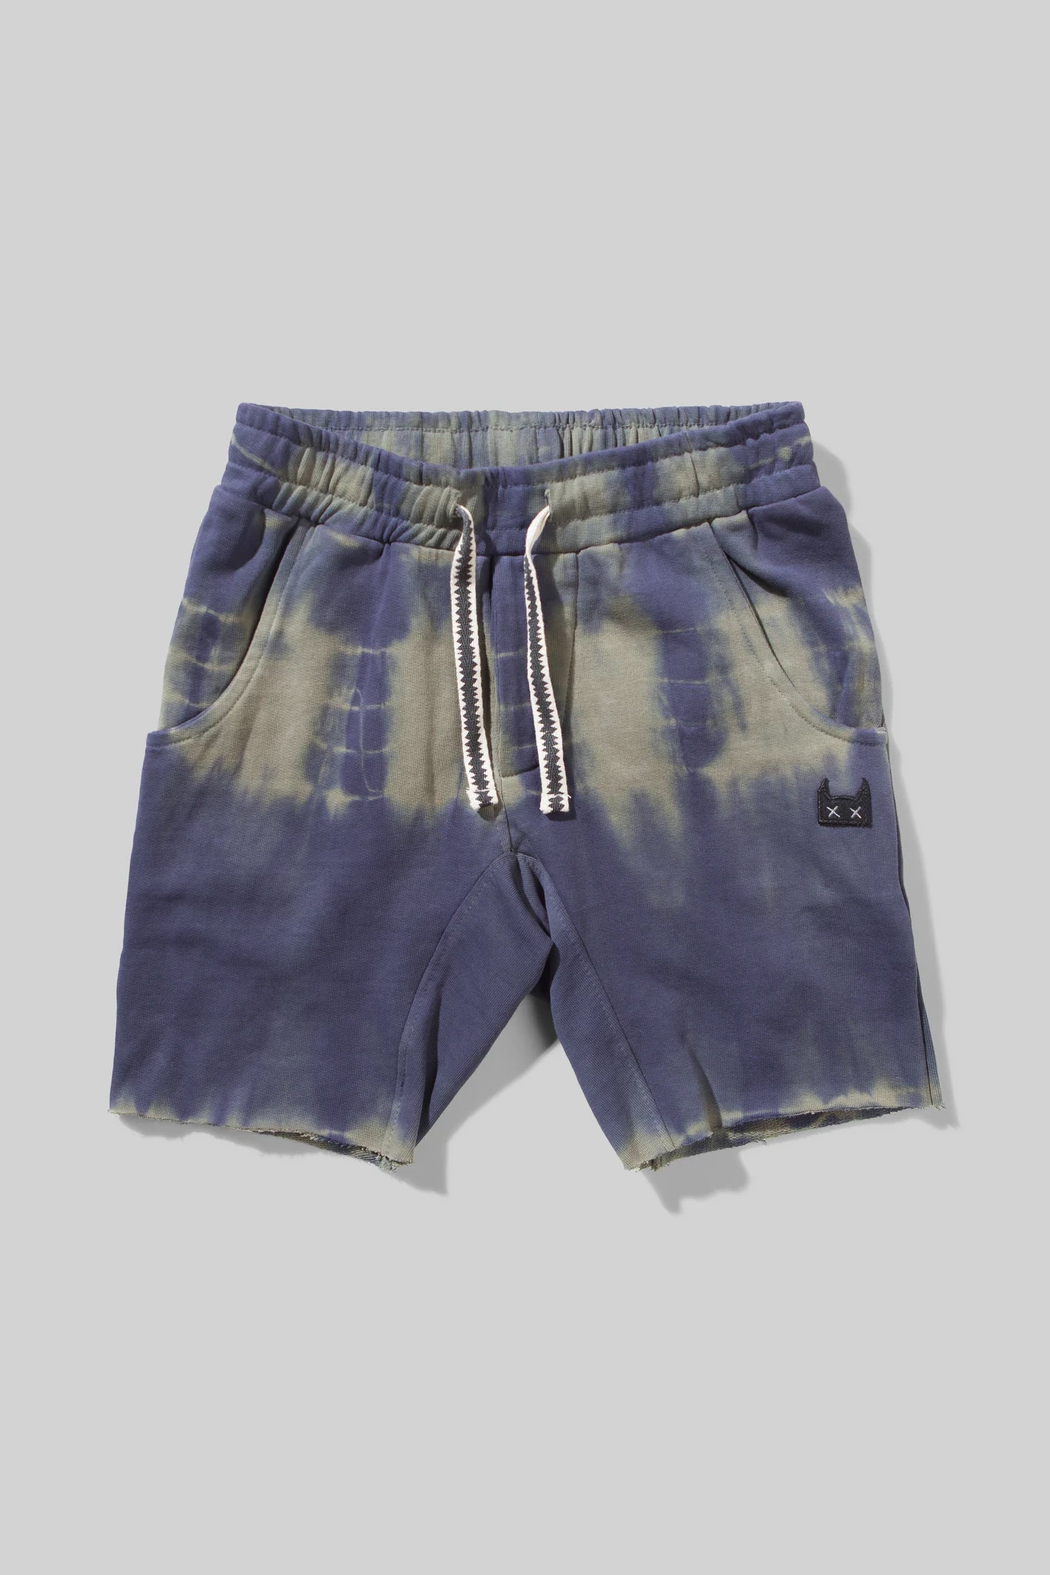 Munster Kids Dye Track Shorts - Main Image